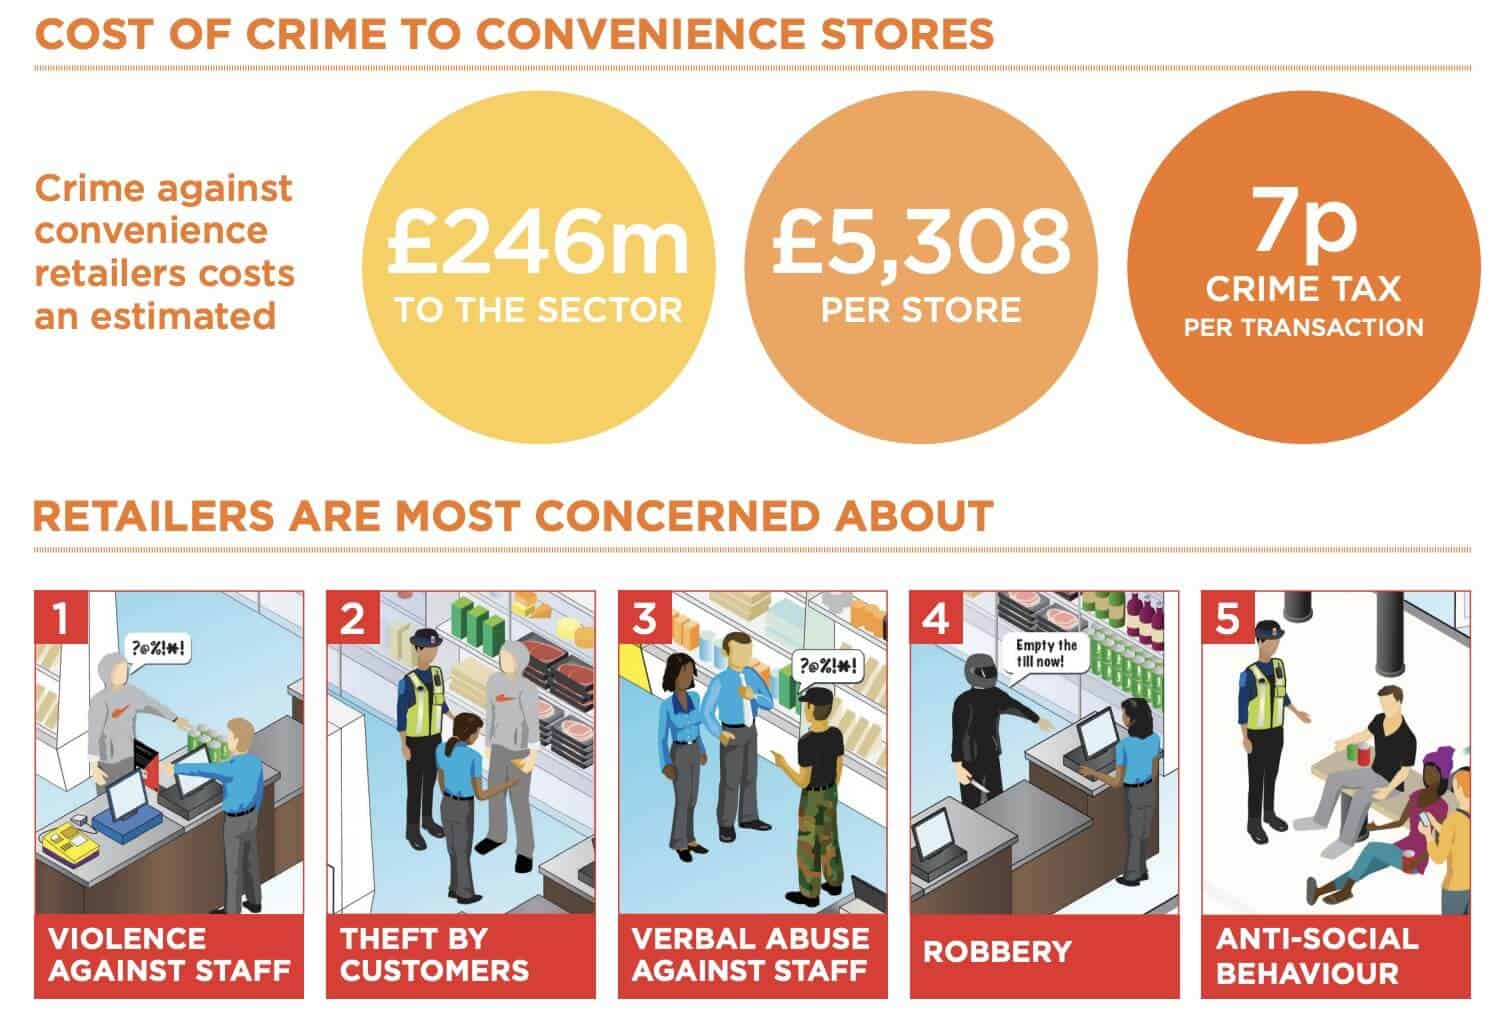 Cost of Crime to Convenience Stores Graphic